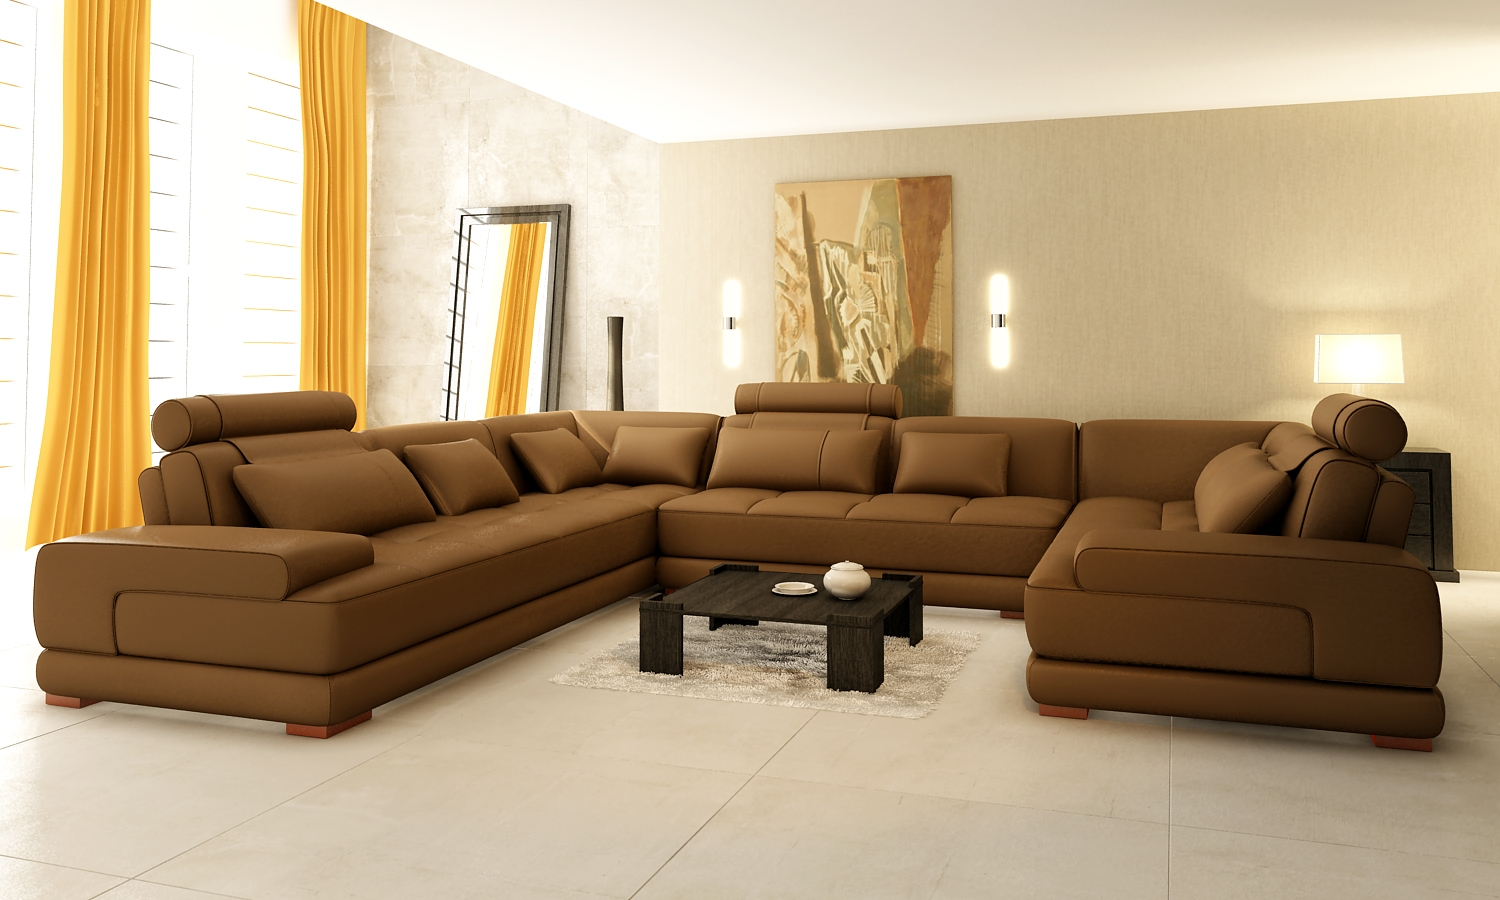 Expensive Sectional Sofas Hereo Sofa Within Expensive Sectional Sofas (Image 4 of 15)